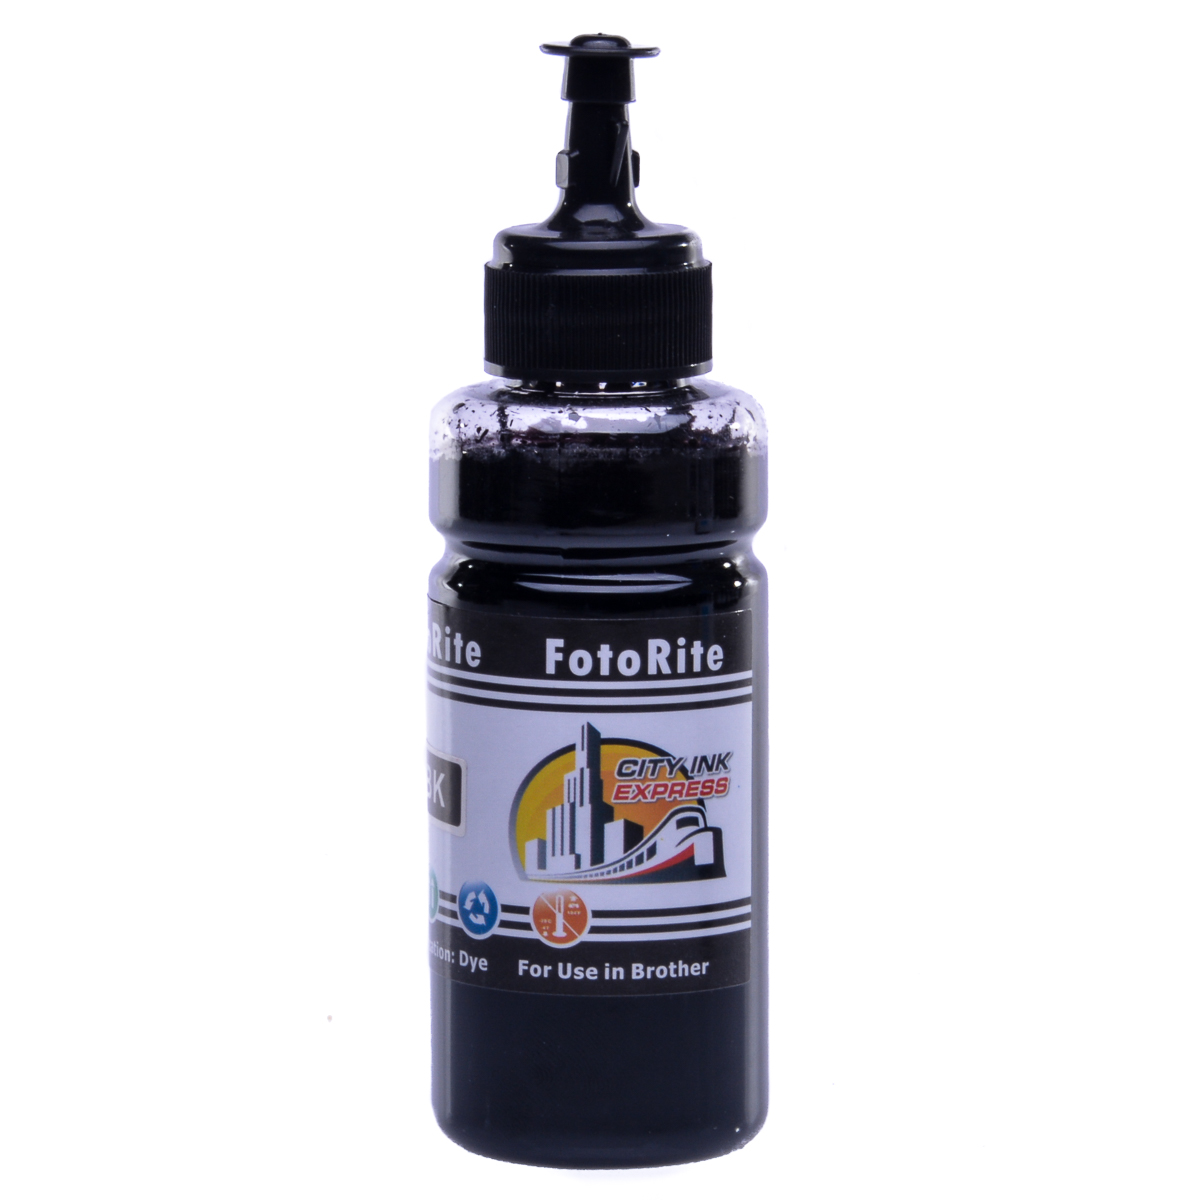 Cheap Black dye ink replaces Brother MFC-J680DW - LC223BK,LC225BK,LC227BK